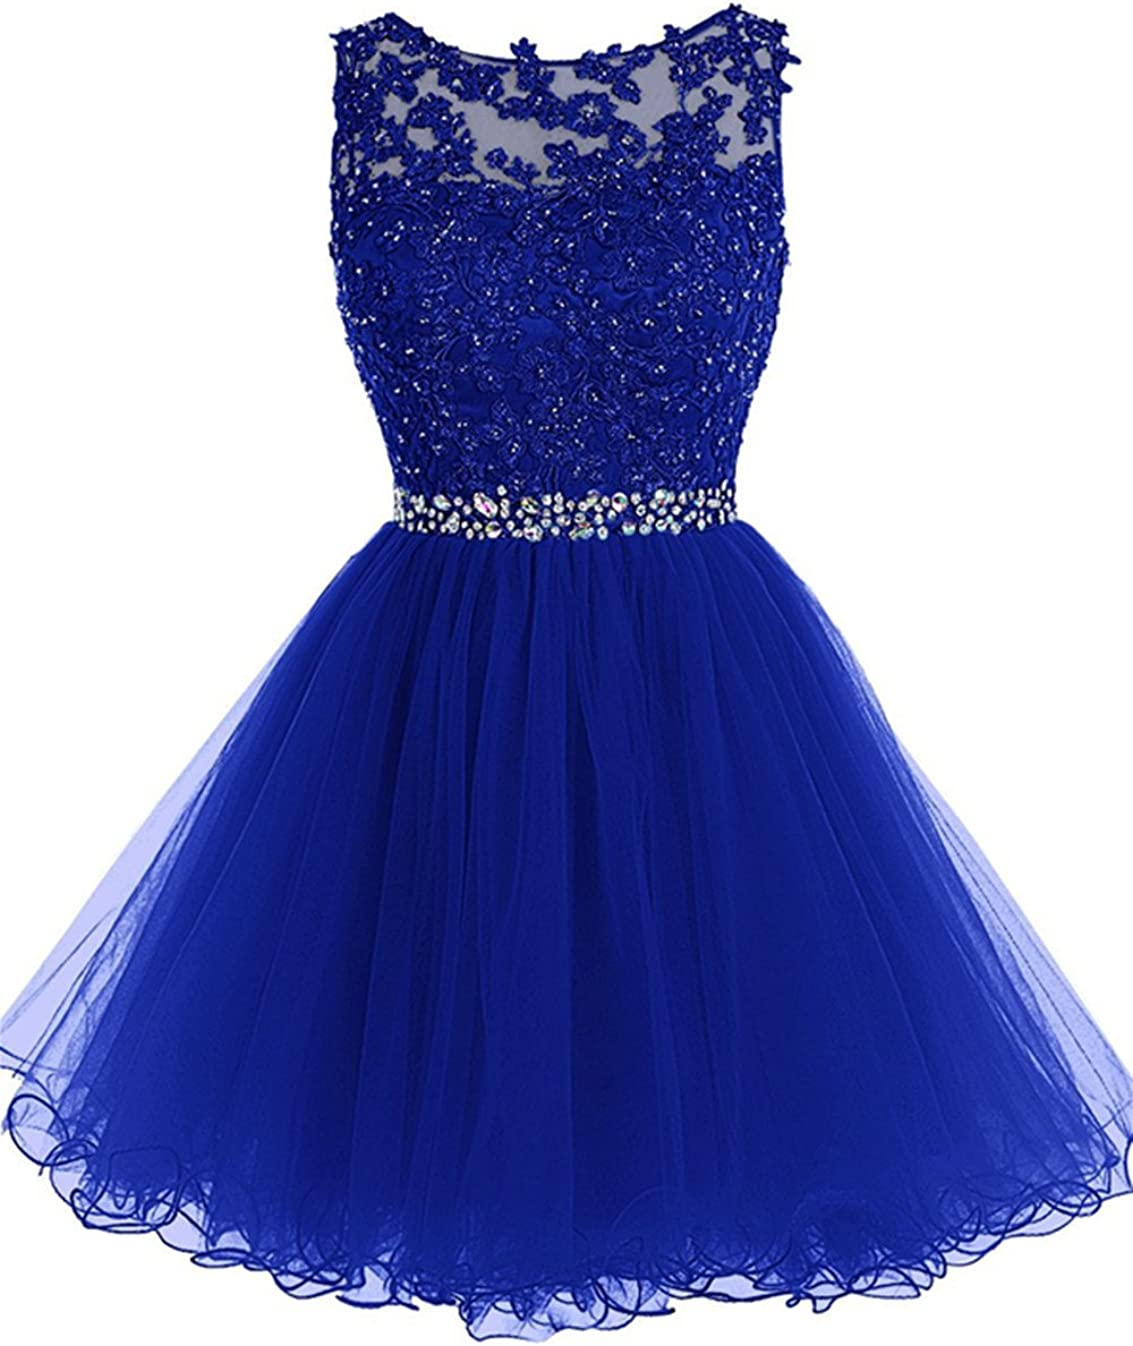 Short Tulle Homecoming Dresses Appliques Beads Prom Party Gowns 71KsO7lvt%2BL